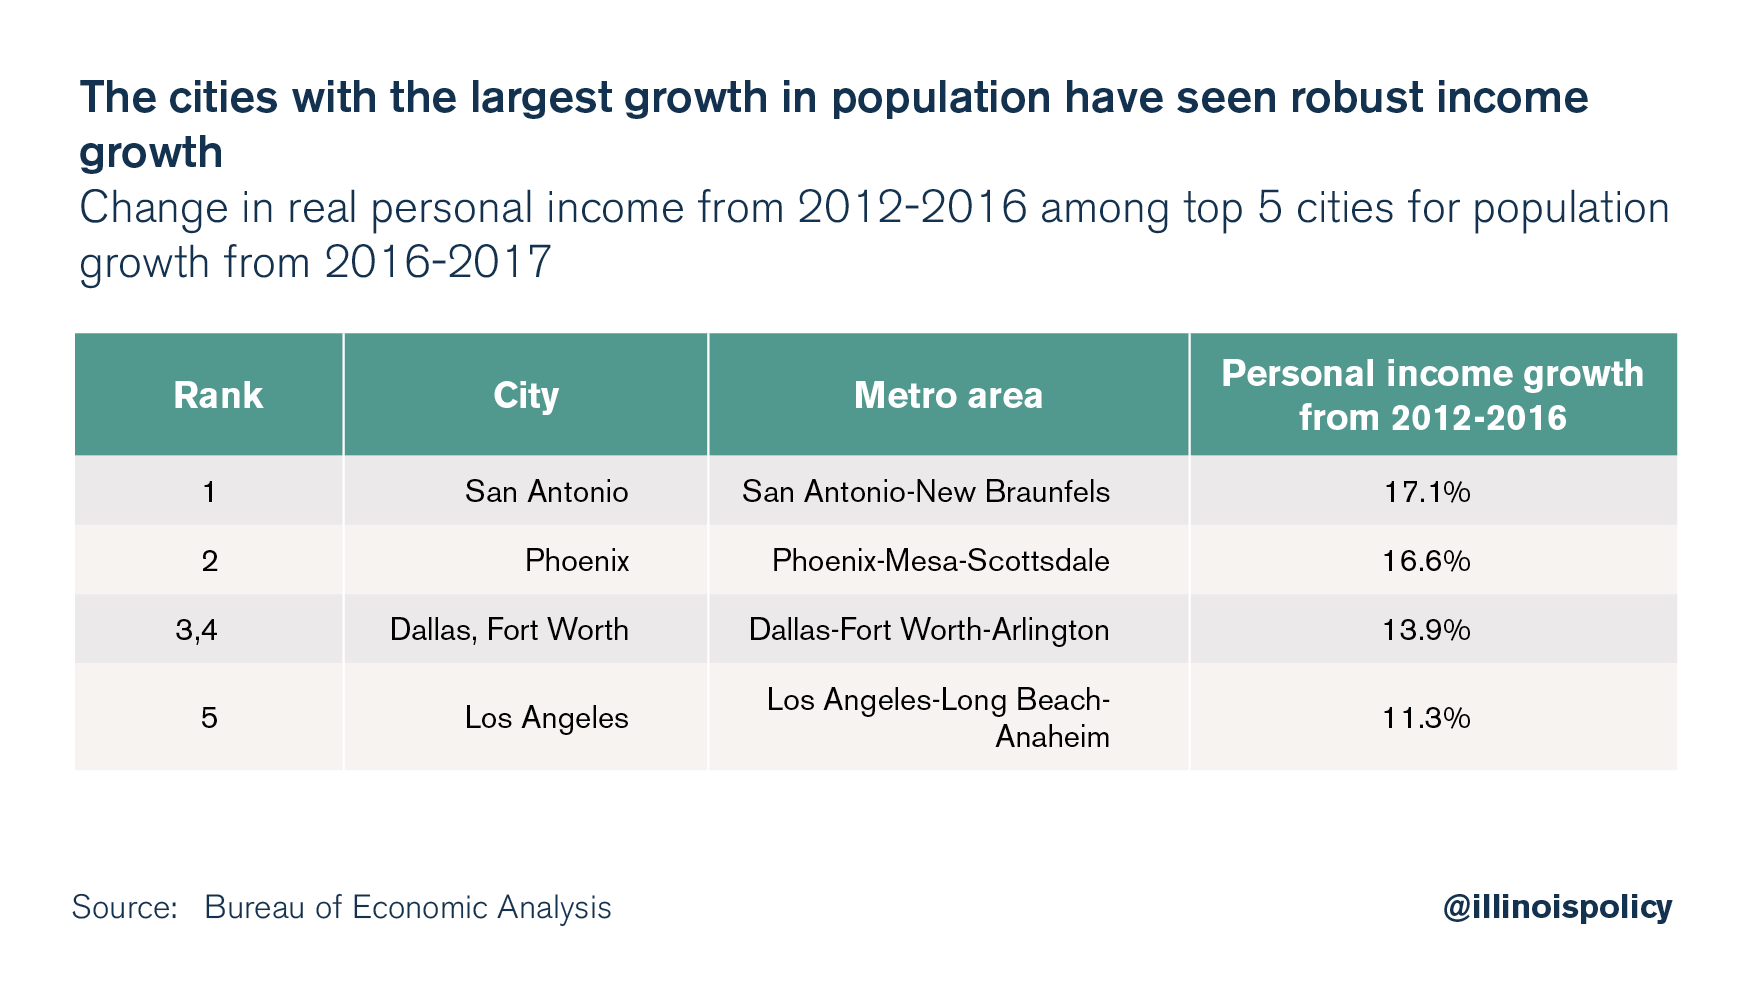 The cities with the largest growth in population have seen robust income growth